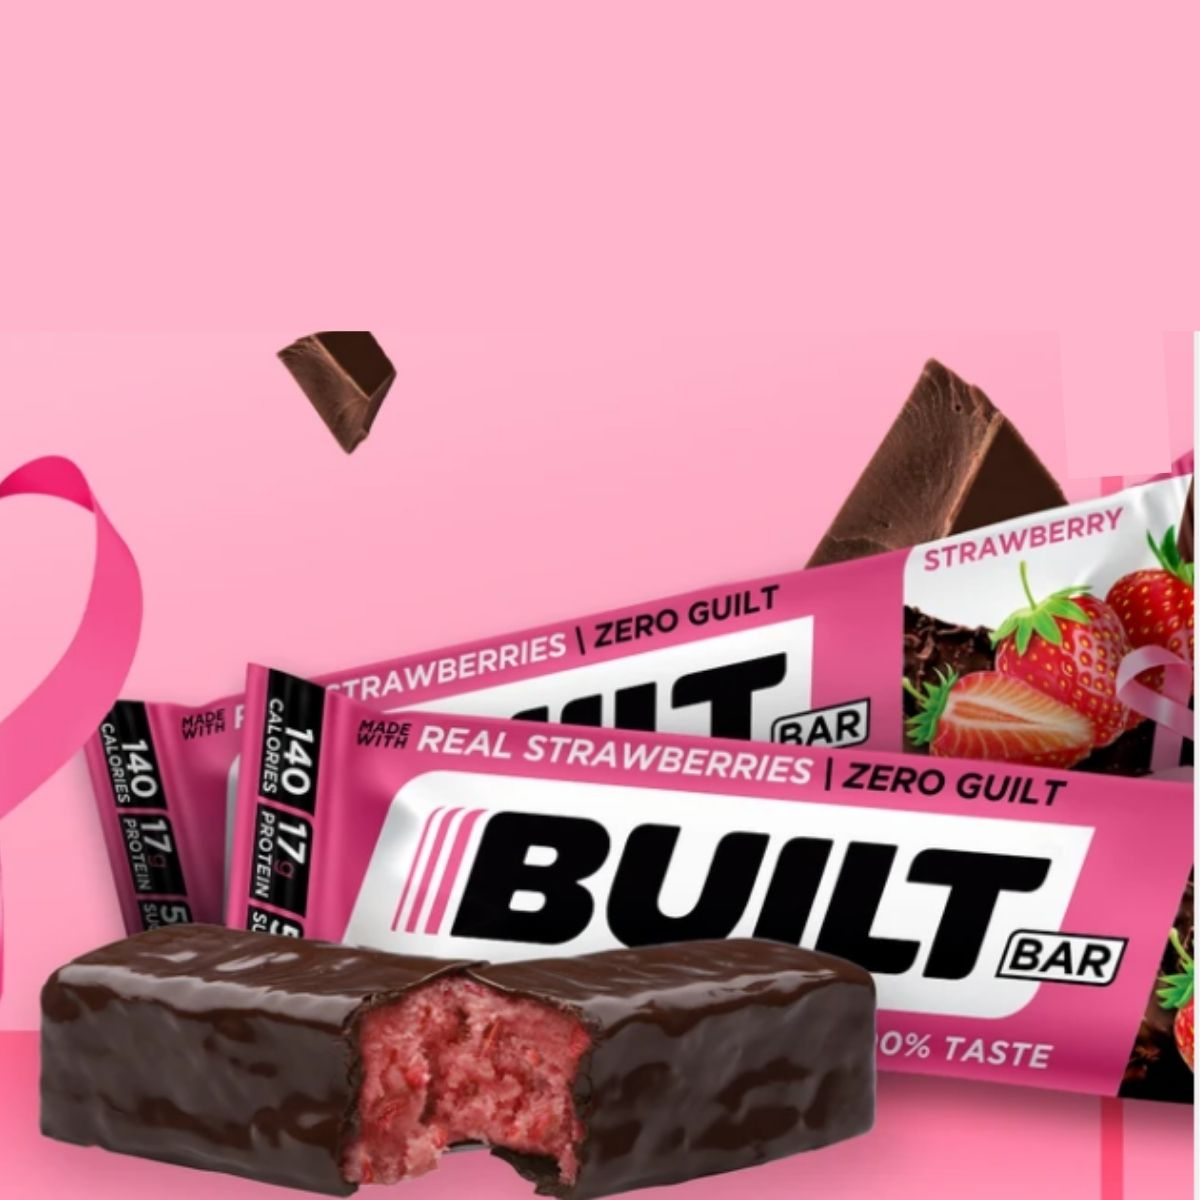 Built Bar Launching Special Edition Pink Strawberry Bar for Breast Cancer Awareness Month